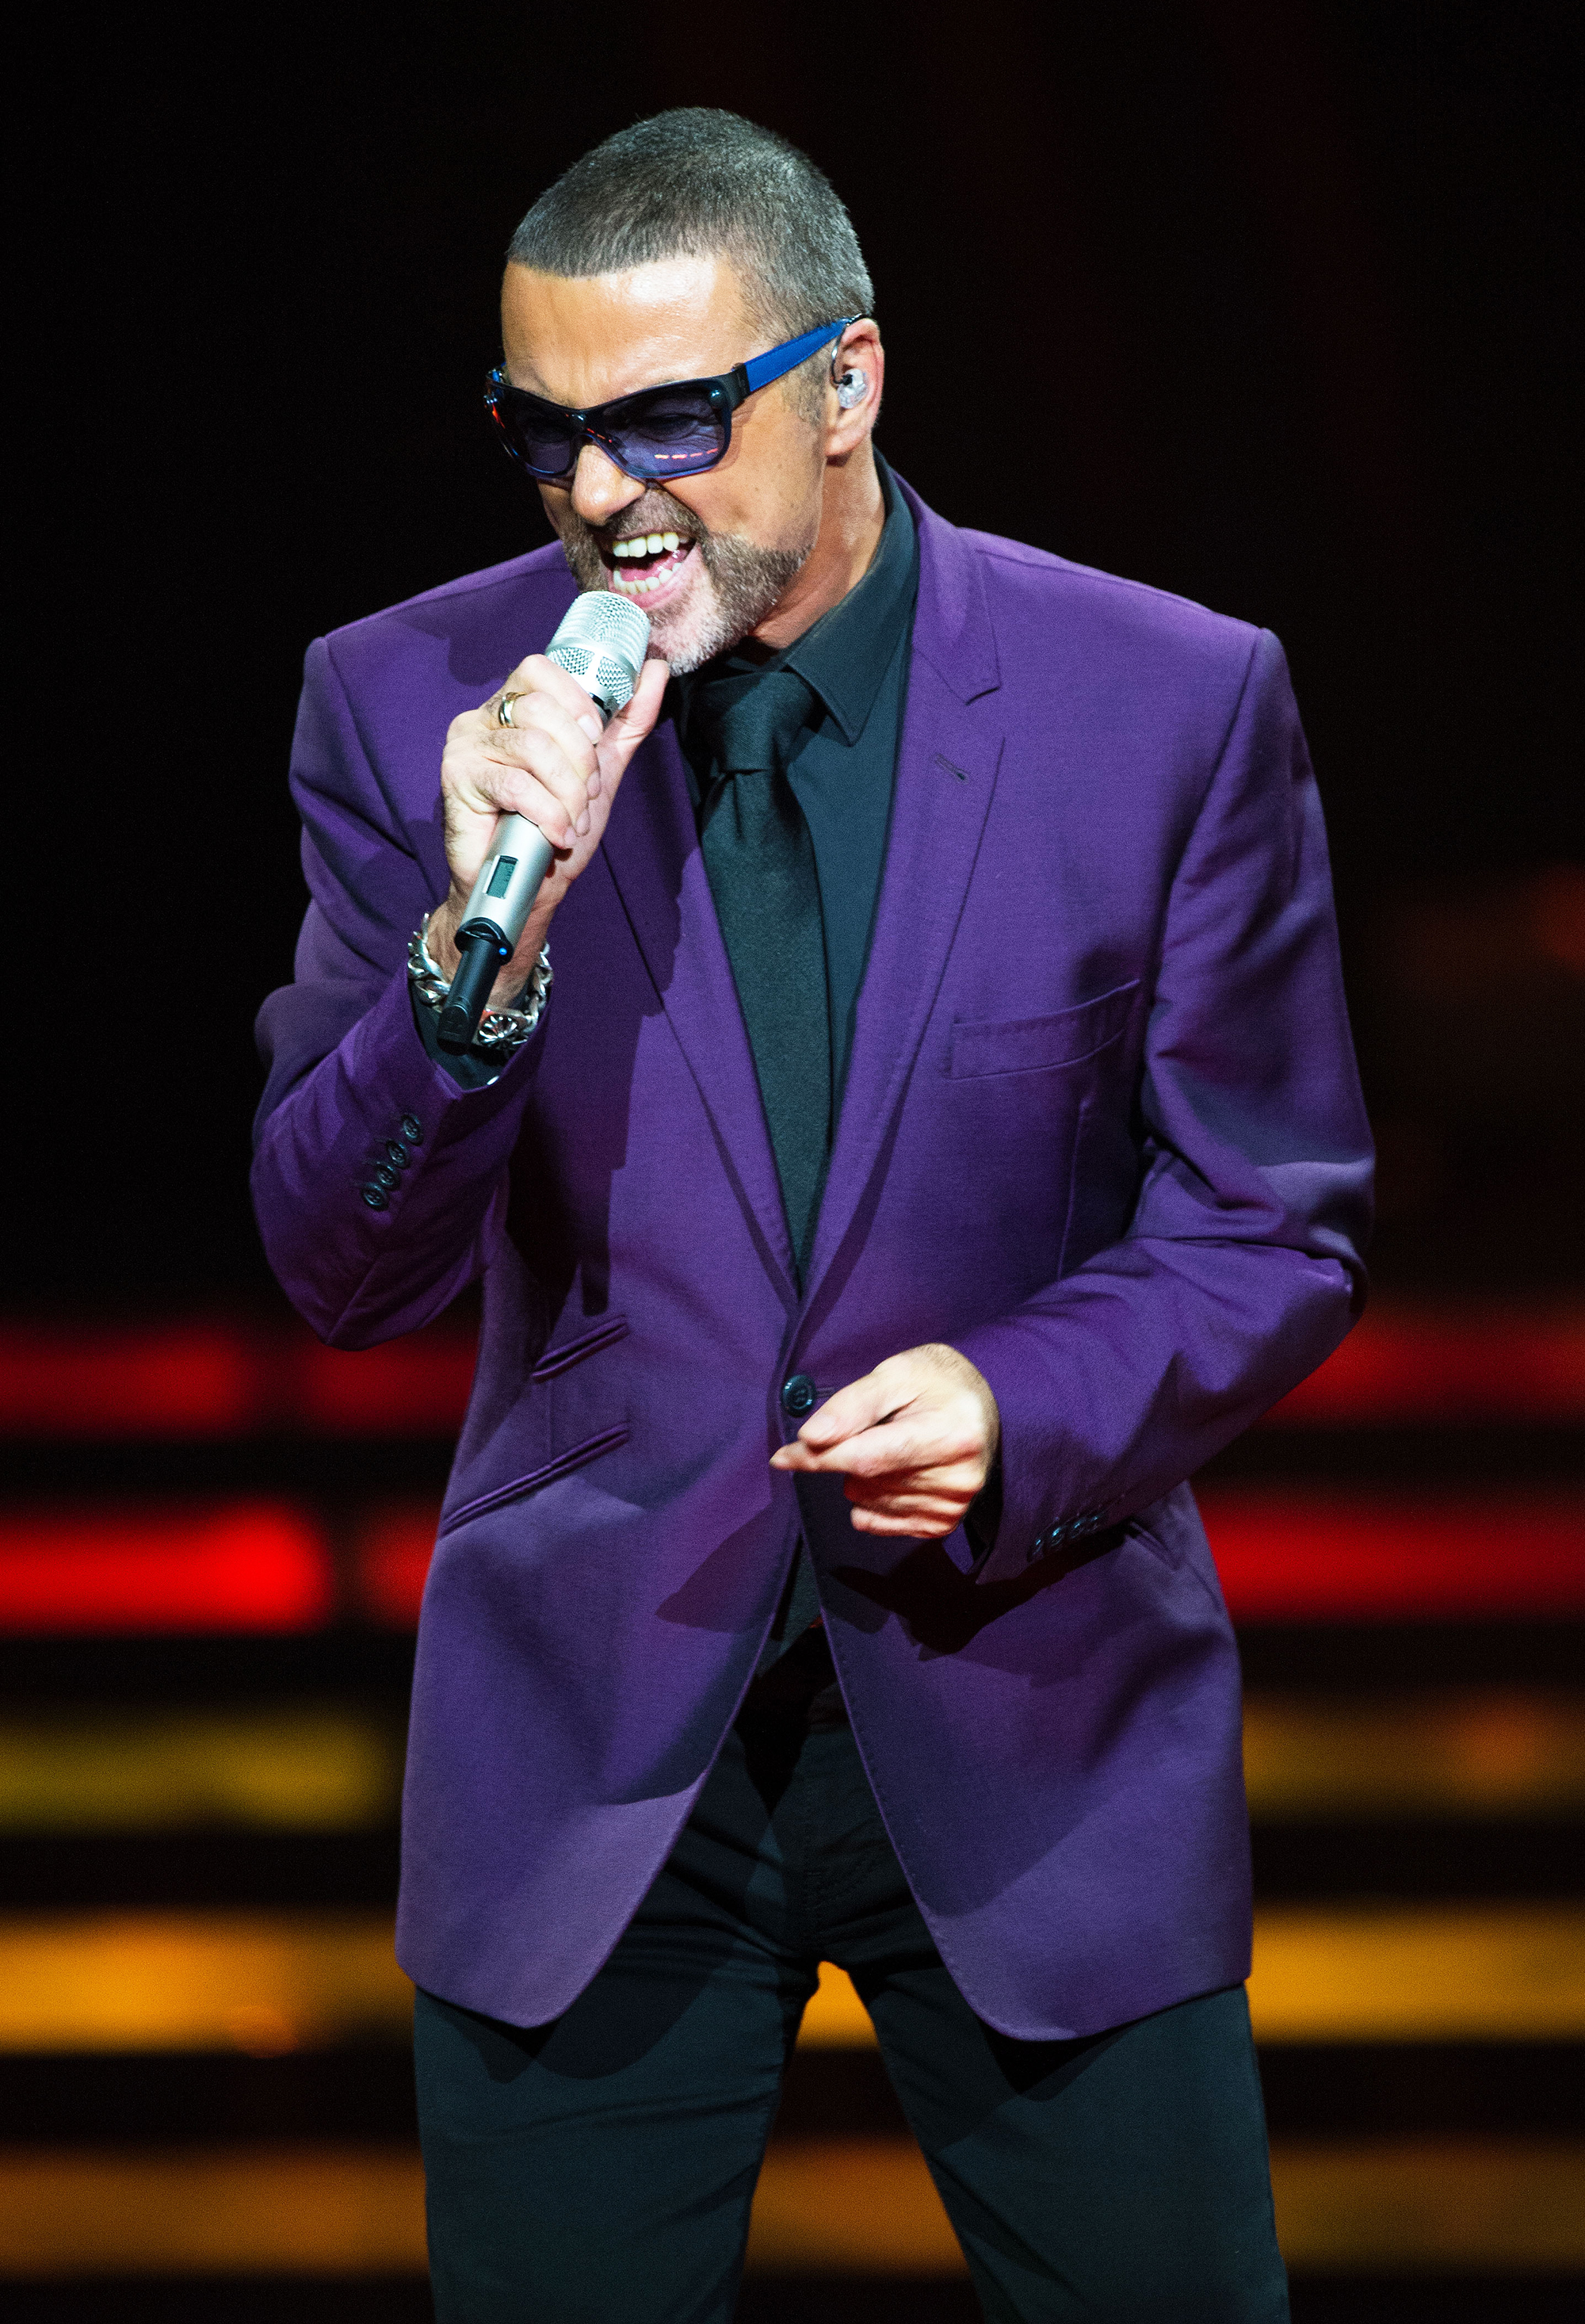 George Michael performs at the Royal Albert Hall in London, on Sept. 29, 2012.